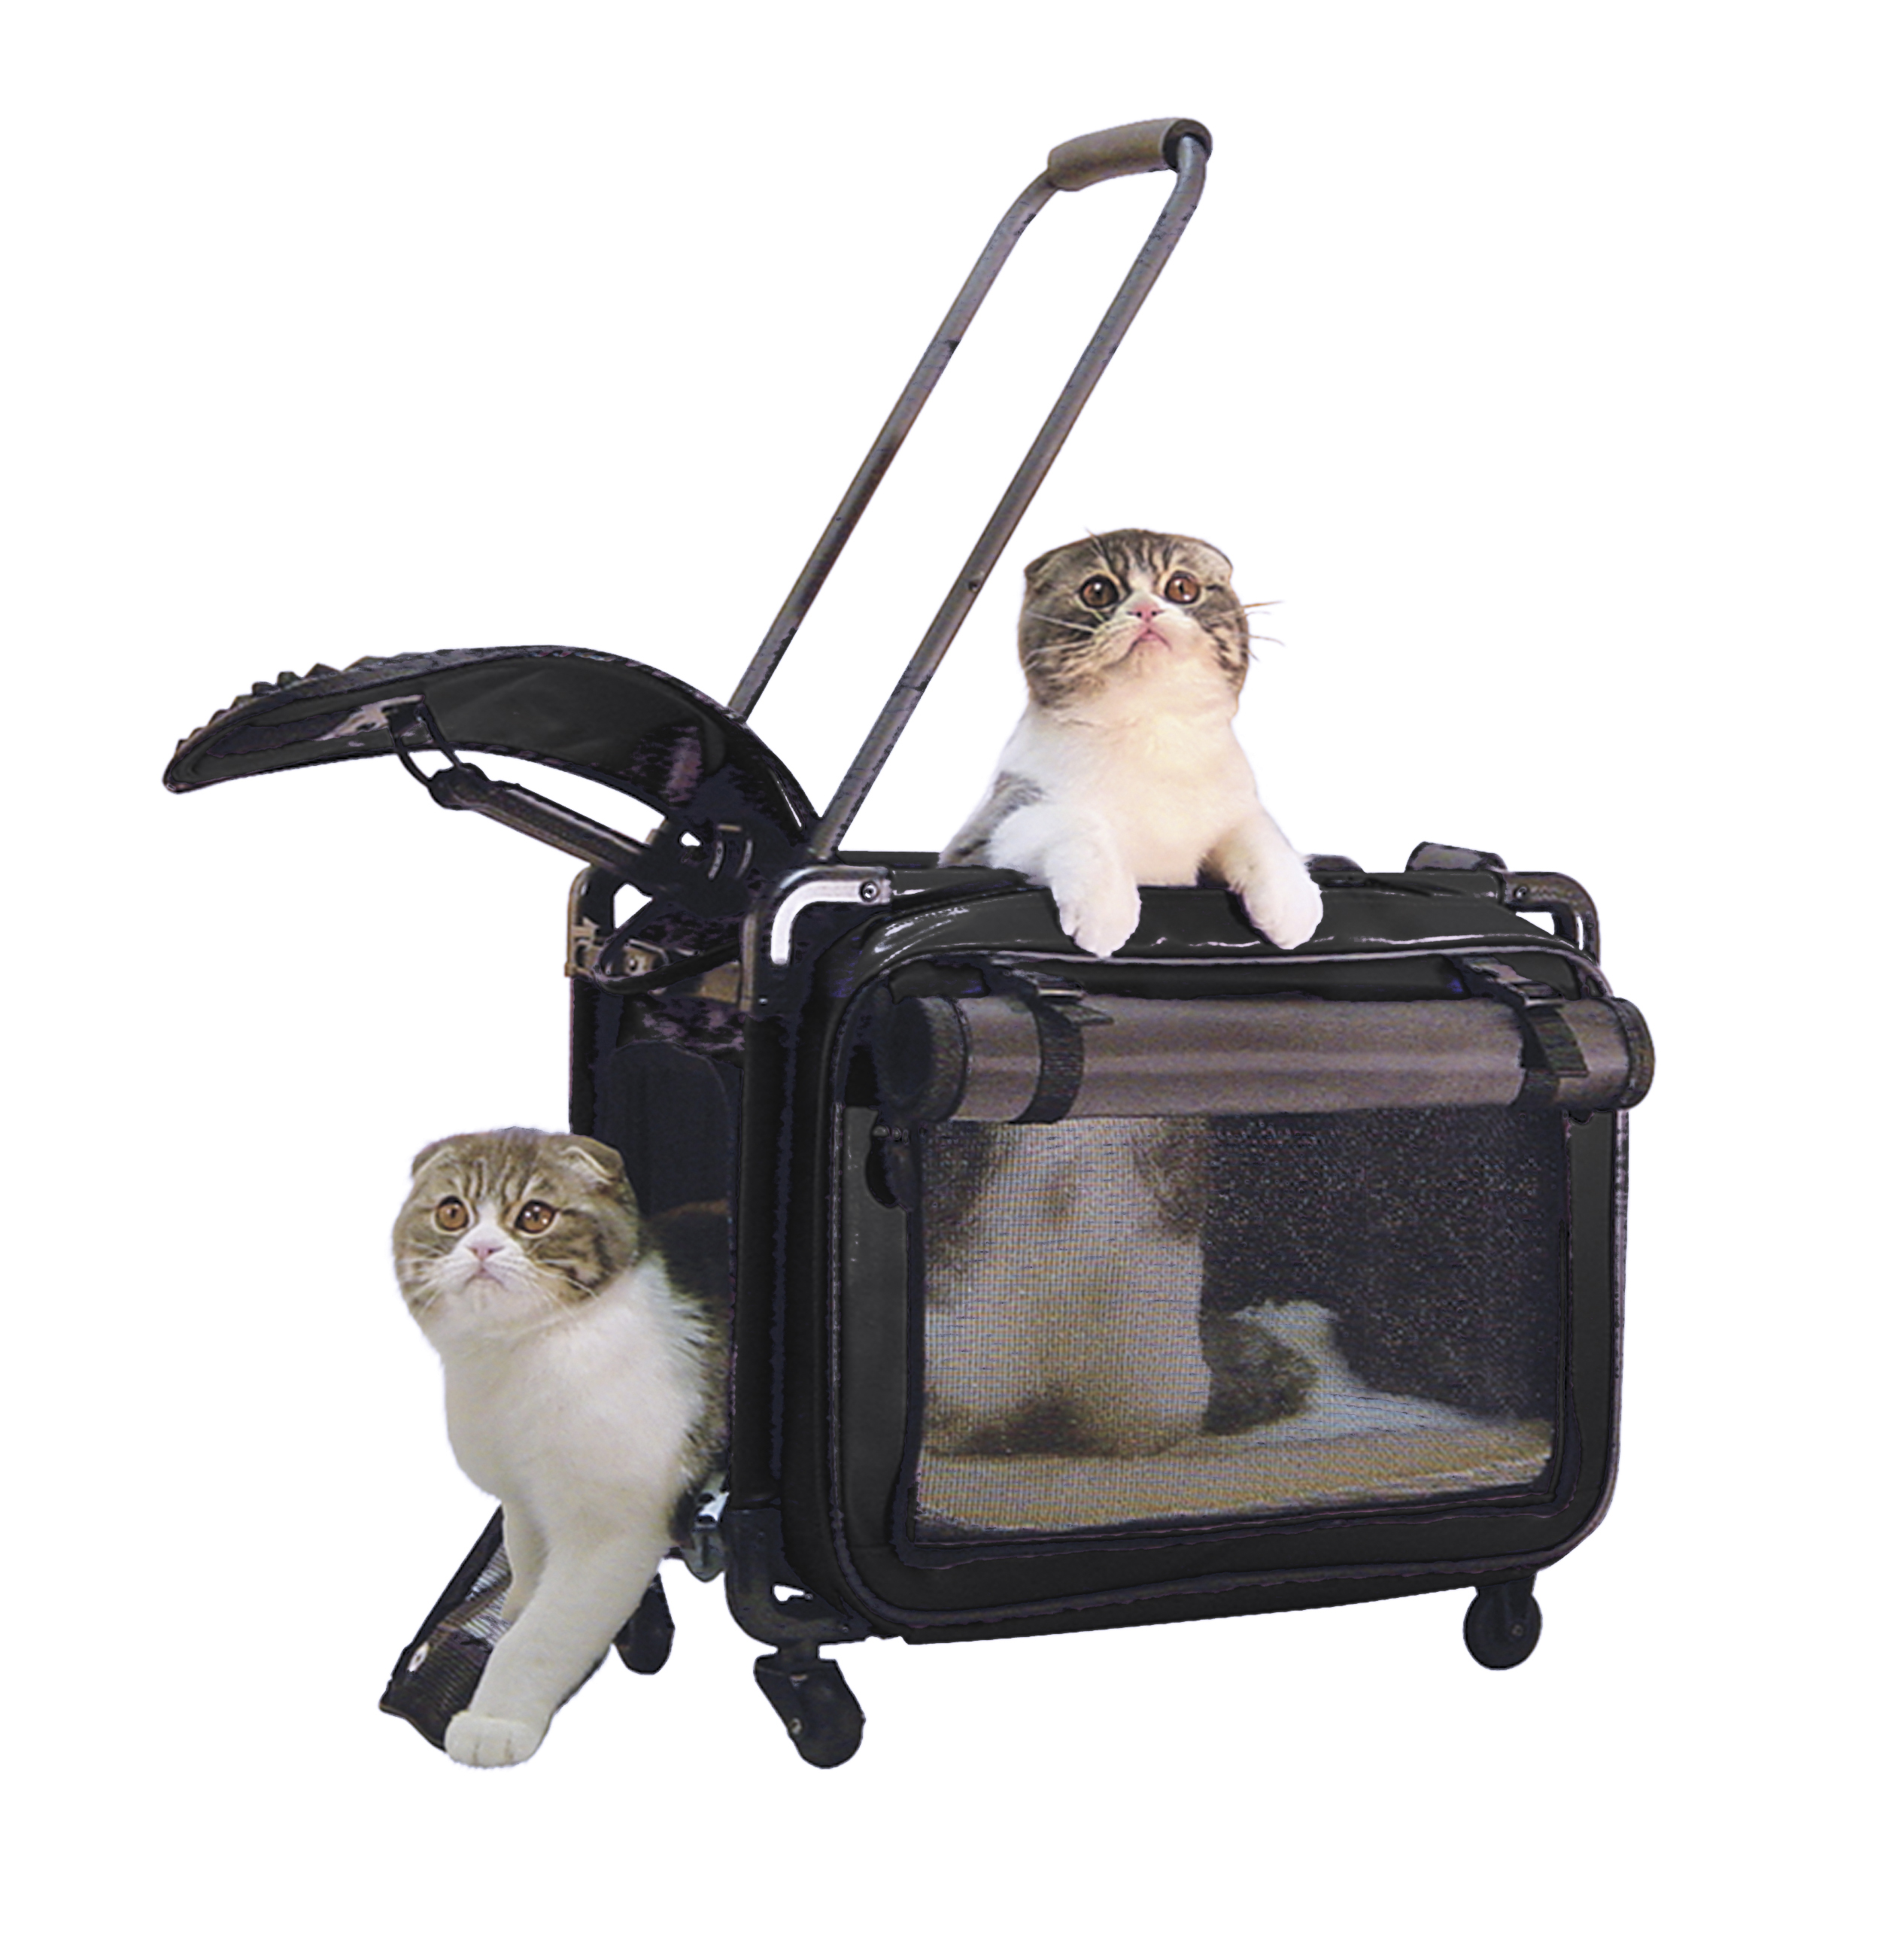 2021 Tutto Pet Carrier Product Review